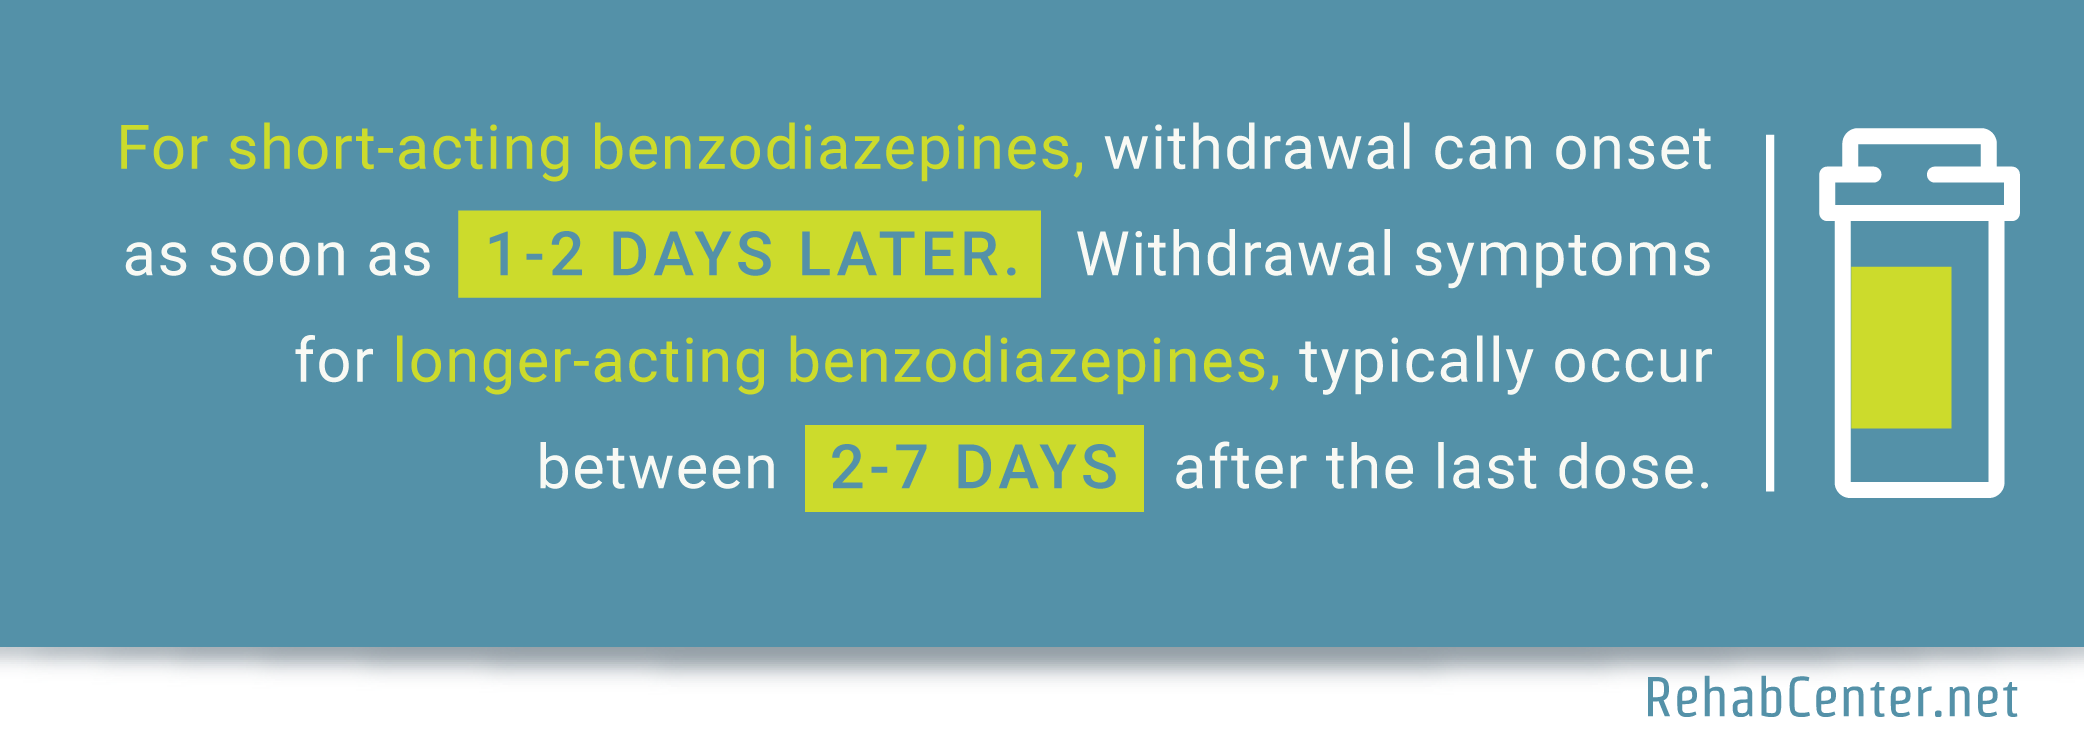 RehabCenter.net How To Get Off Benzodiazepines As Soon As 1-2 Days Later